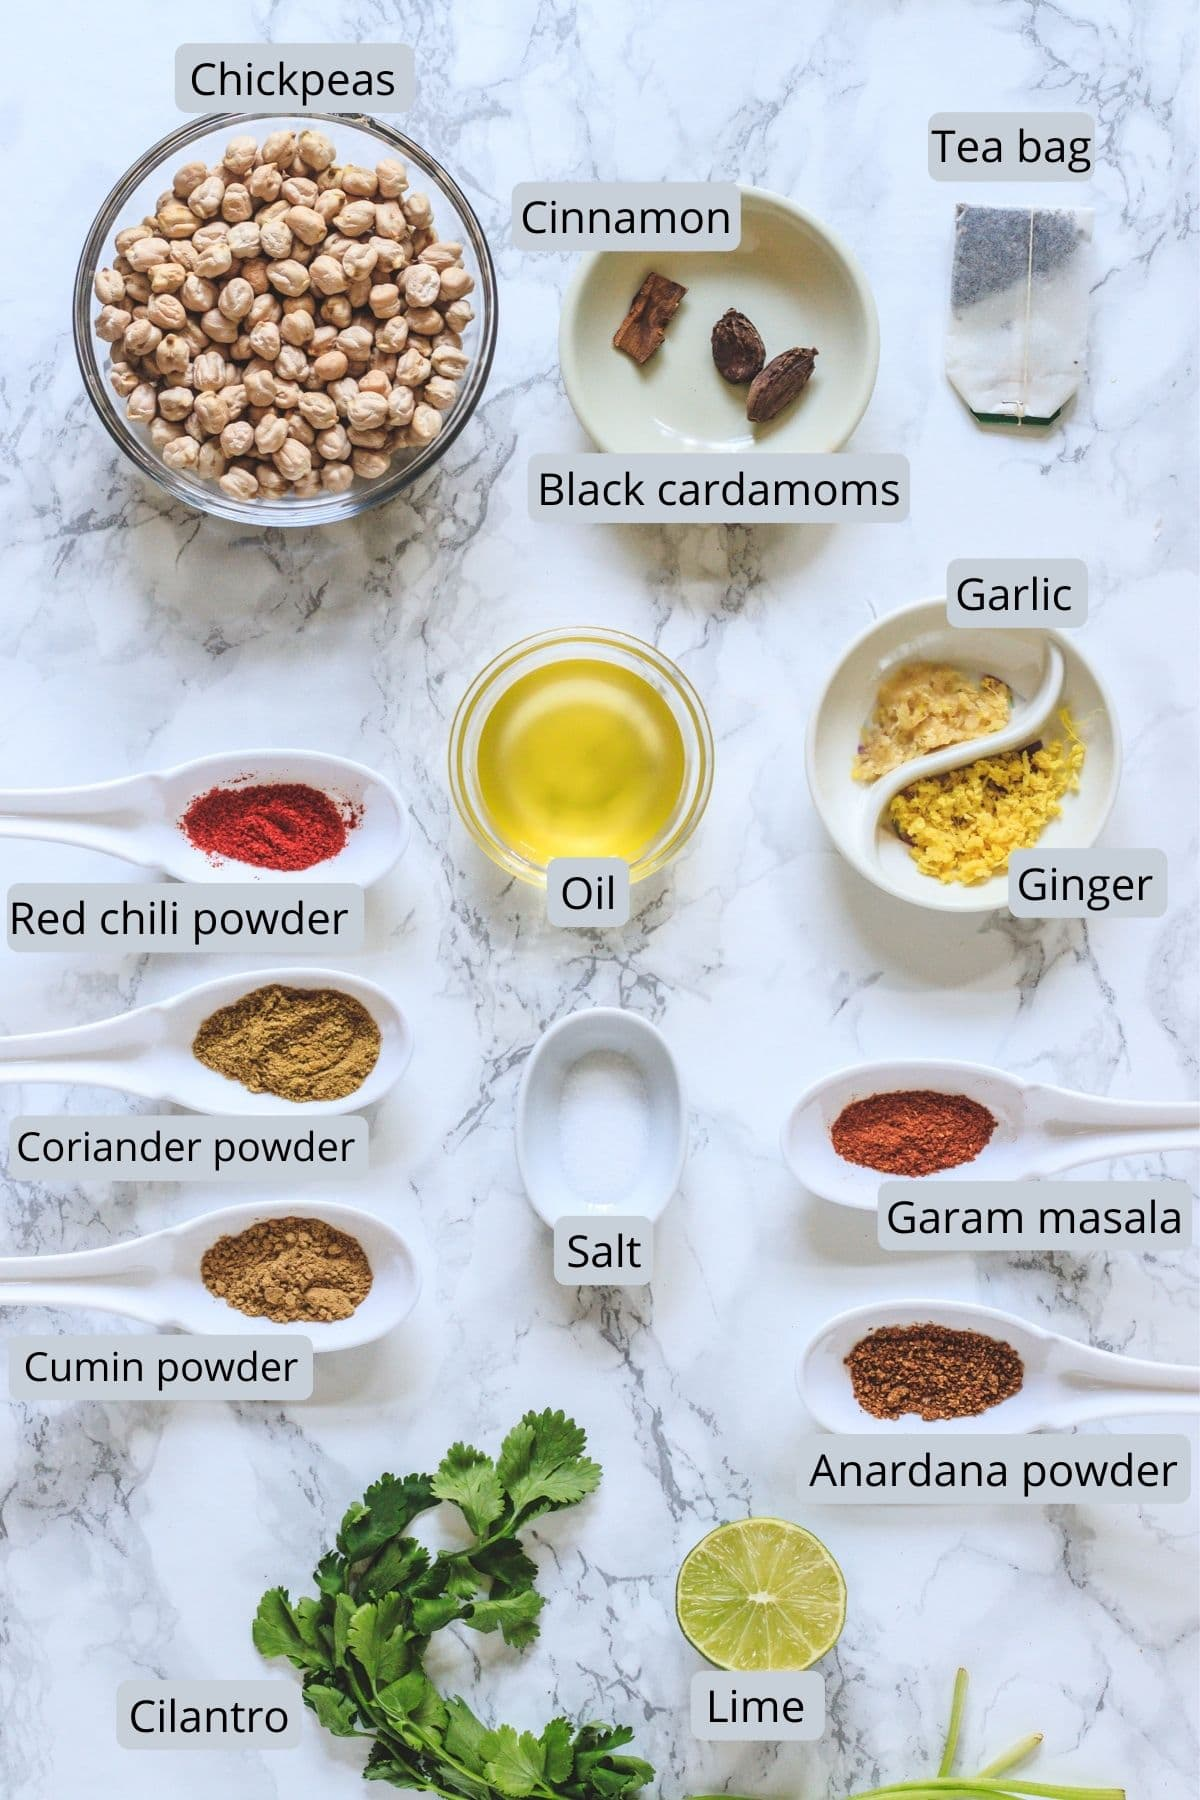 Ingredients used in pindi chole includes chickpeas, teabag, oil, salt, lime, ginger, garlic and spices.